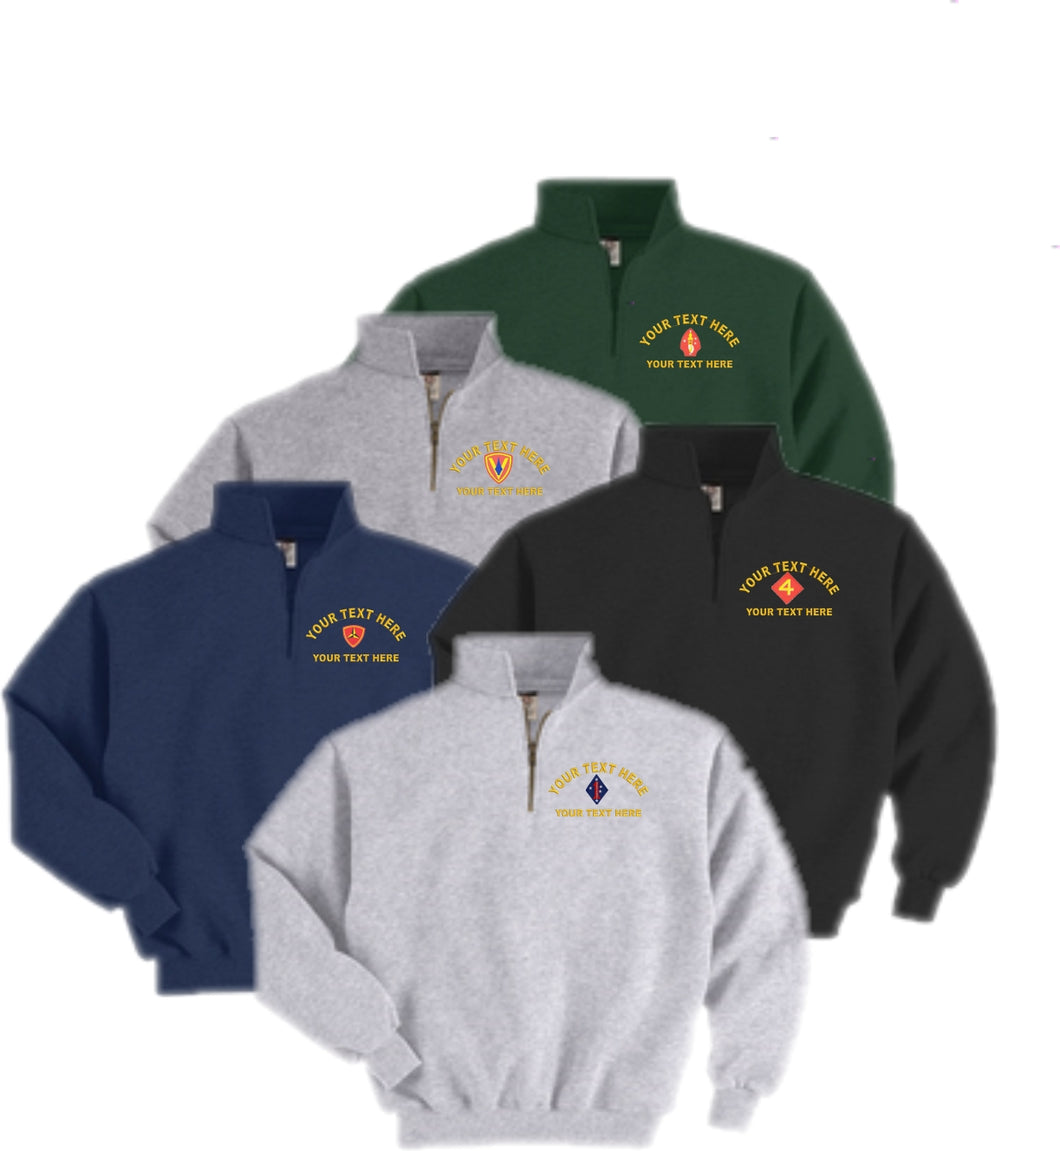 Embroidered U.S. Marine Corps Quarter-Zip Sweatshirt - Custom Military Apparel & Accessories